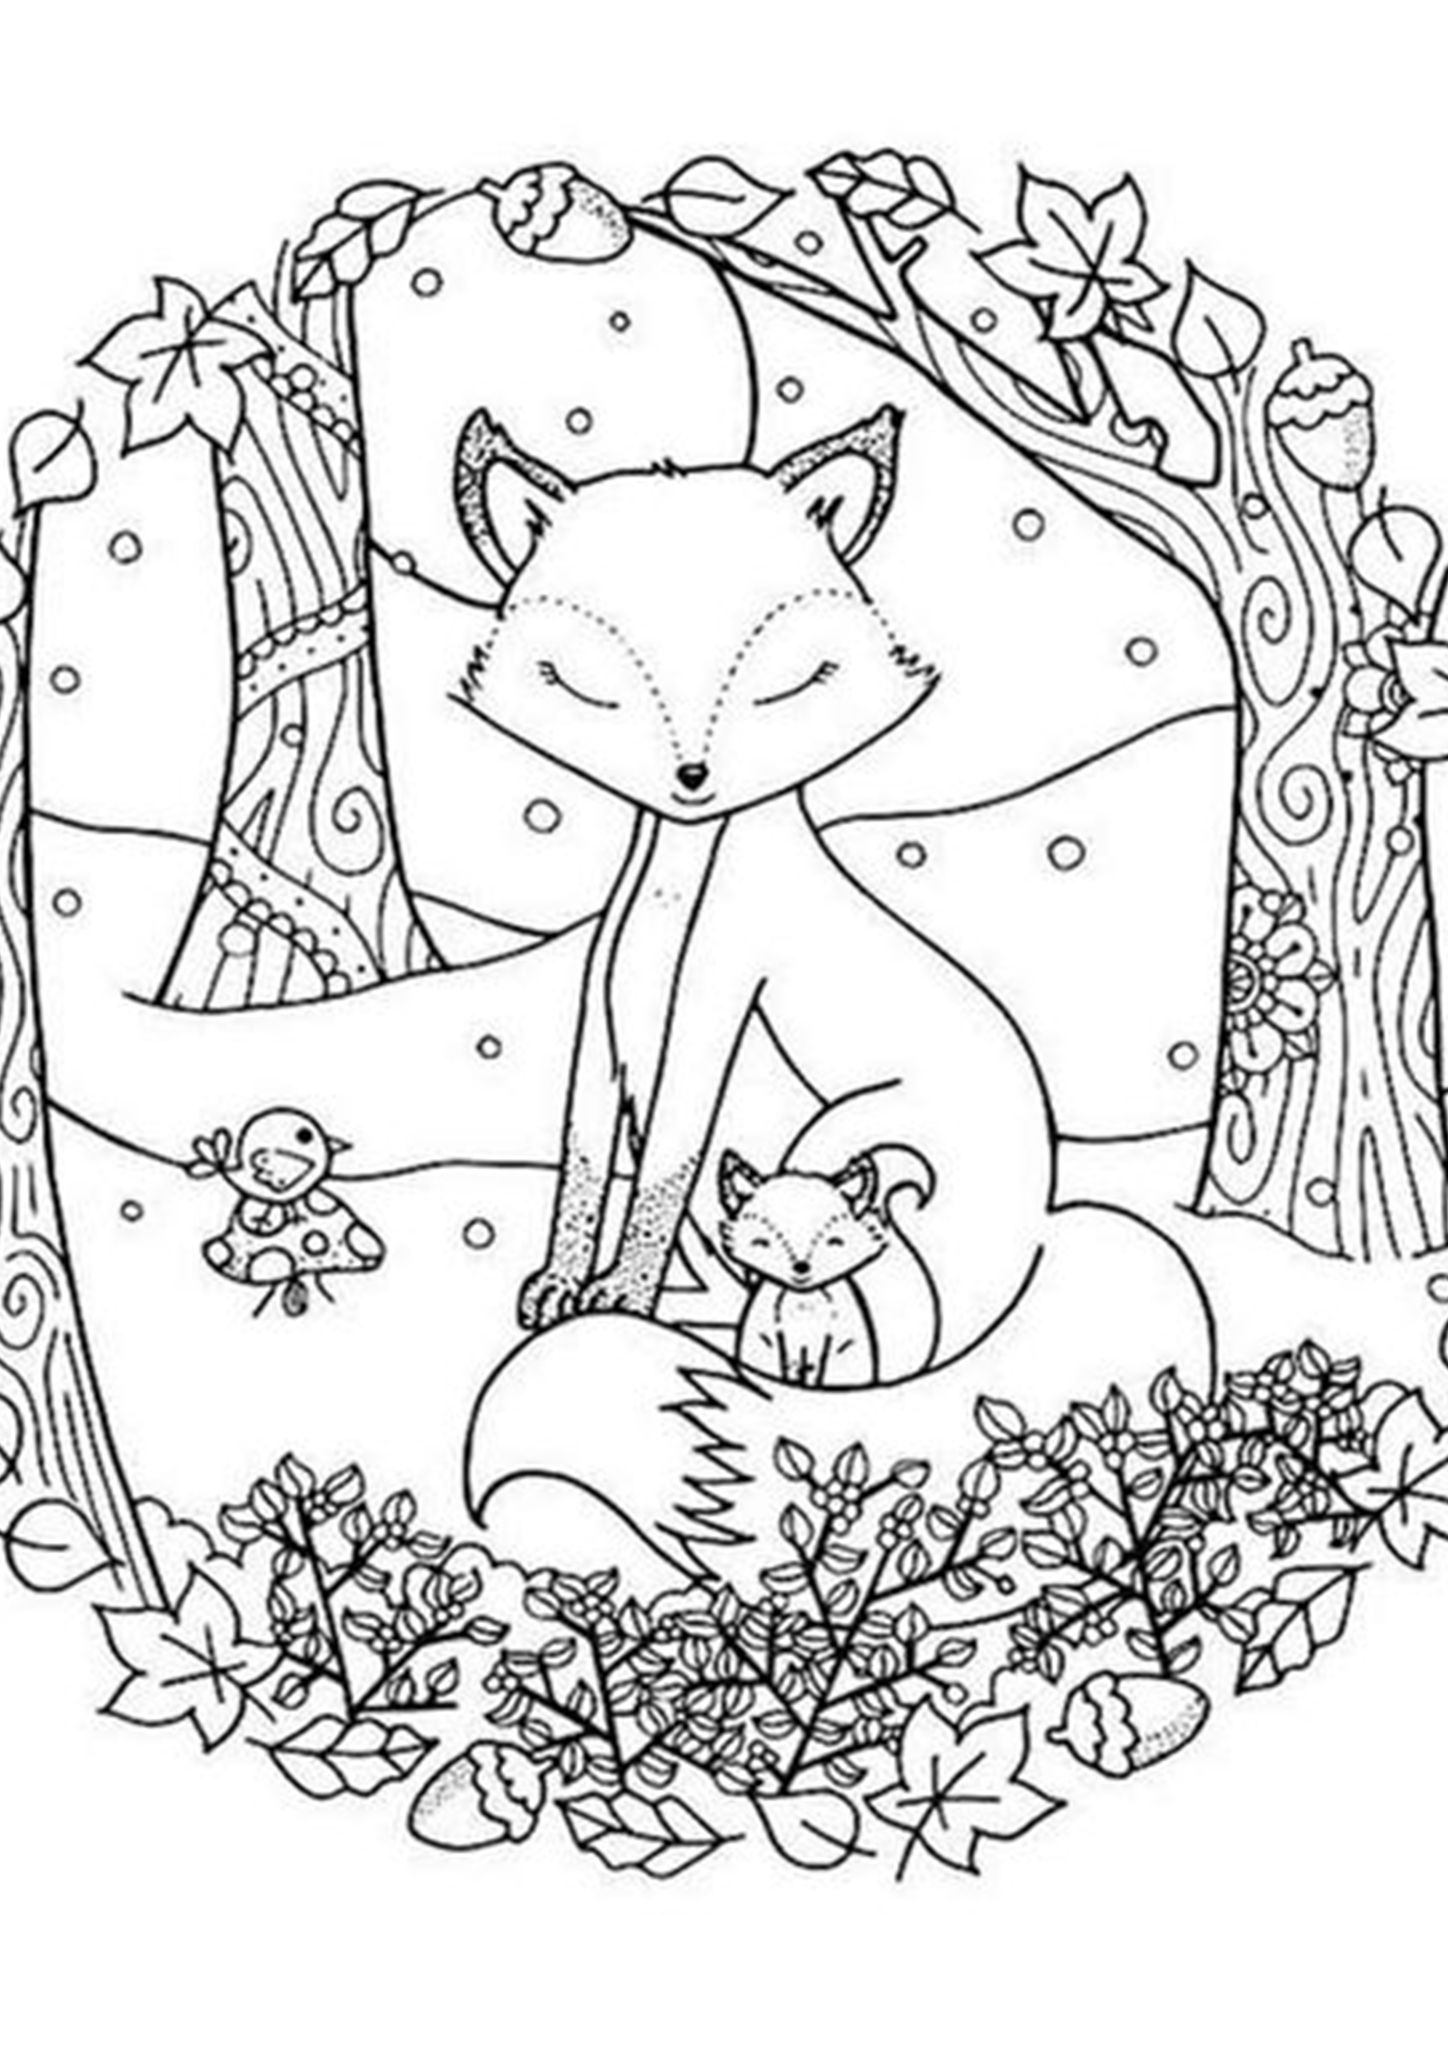 animals in winter coloring pages free easy to print fox coloring pages in 2020 with in coloring winter animals pages